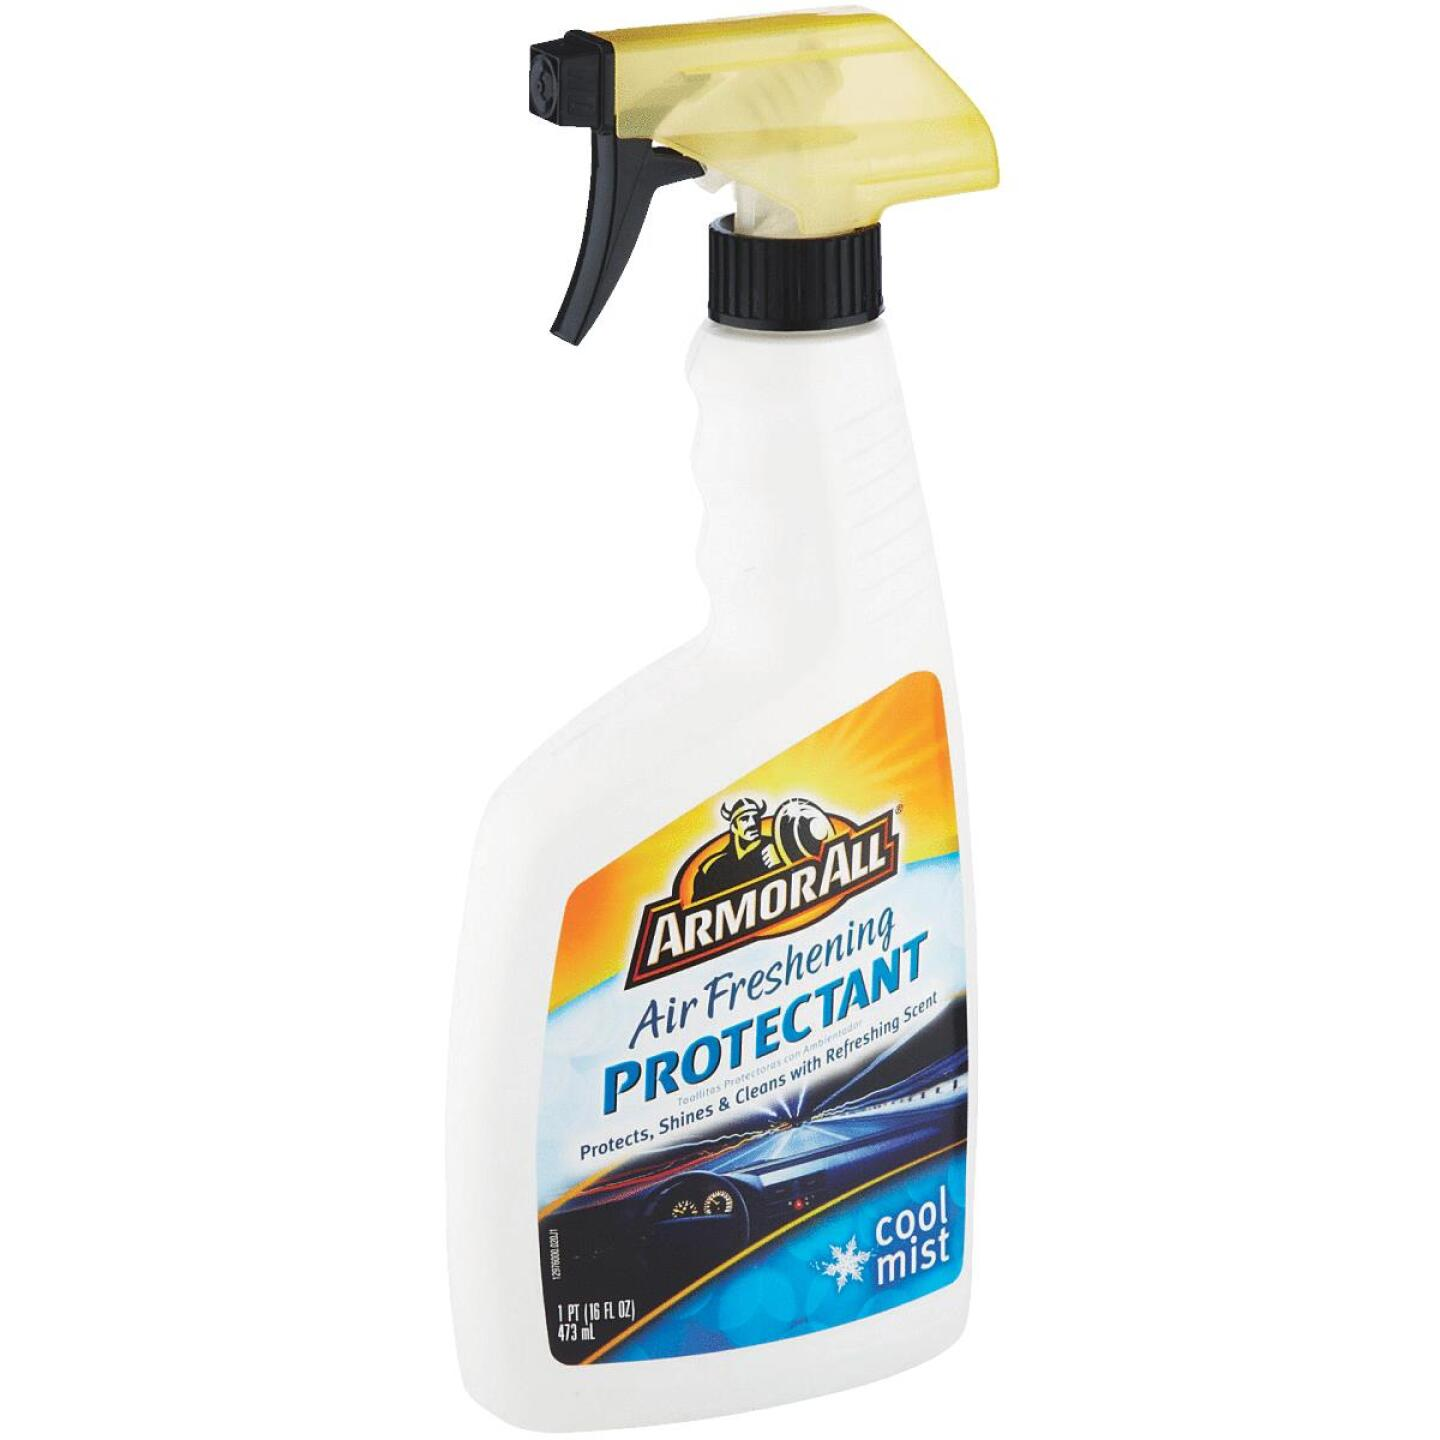 Armor All 16 Oz. Pump Spray Air Freshening Protectant, Cool Mist Scent Image 2